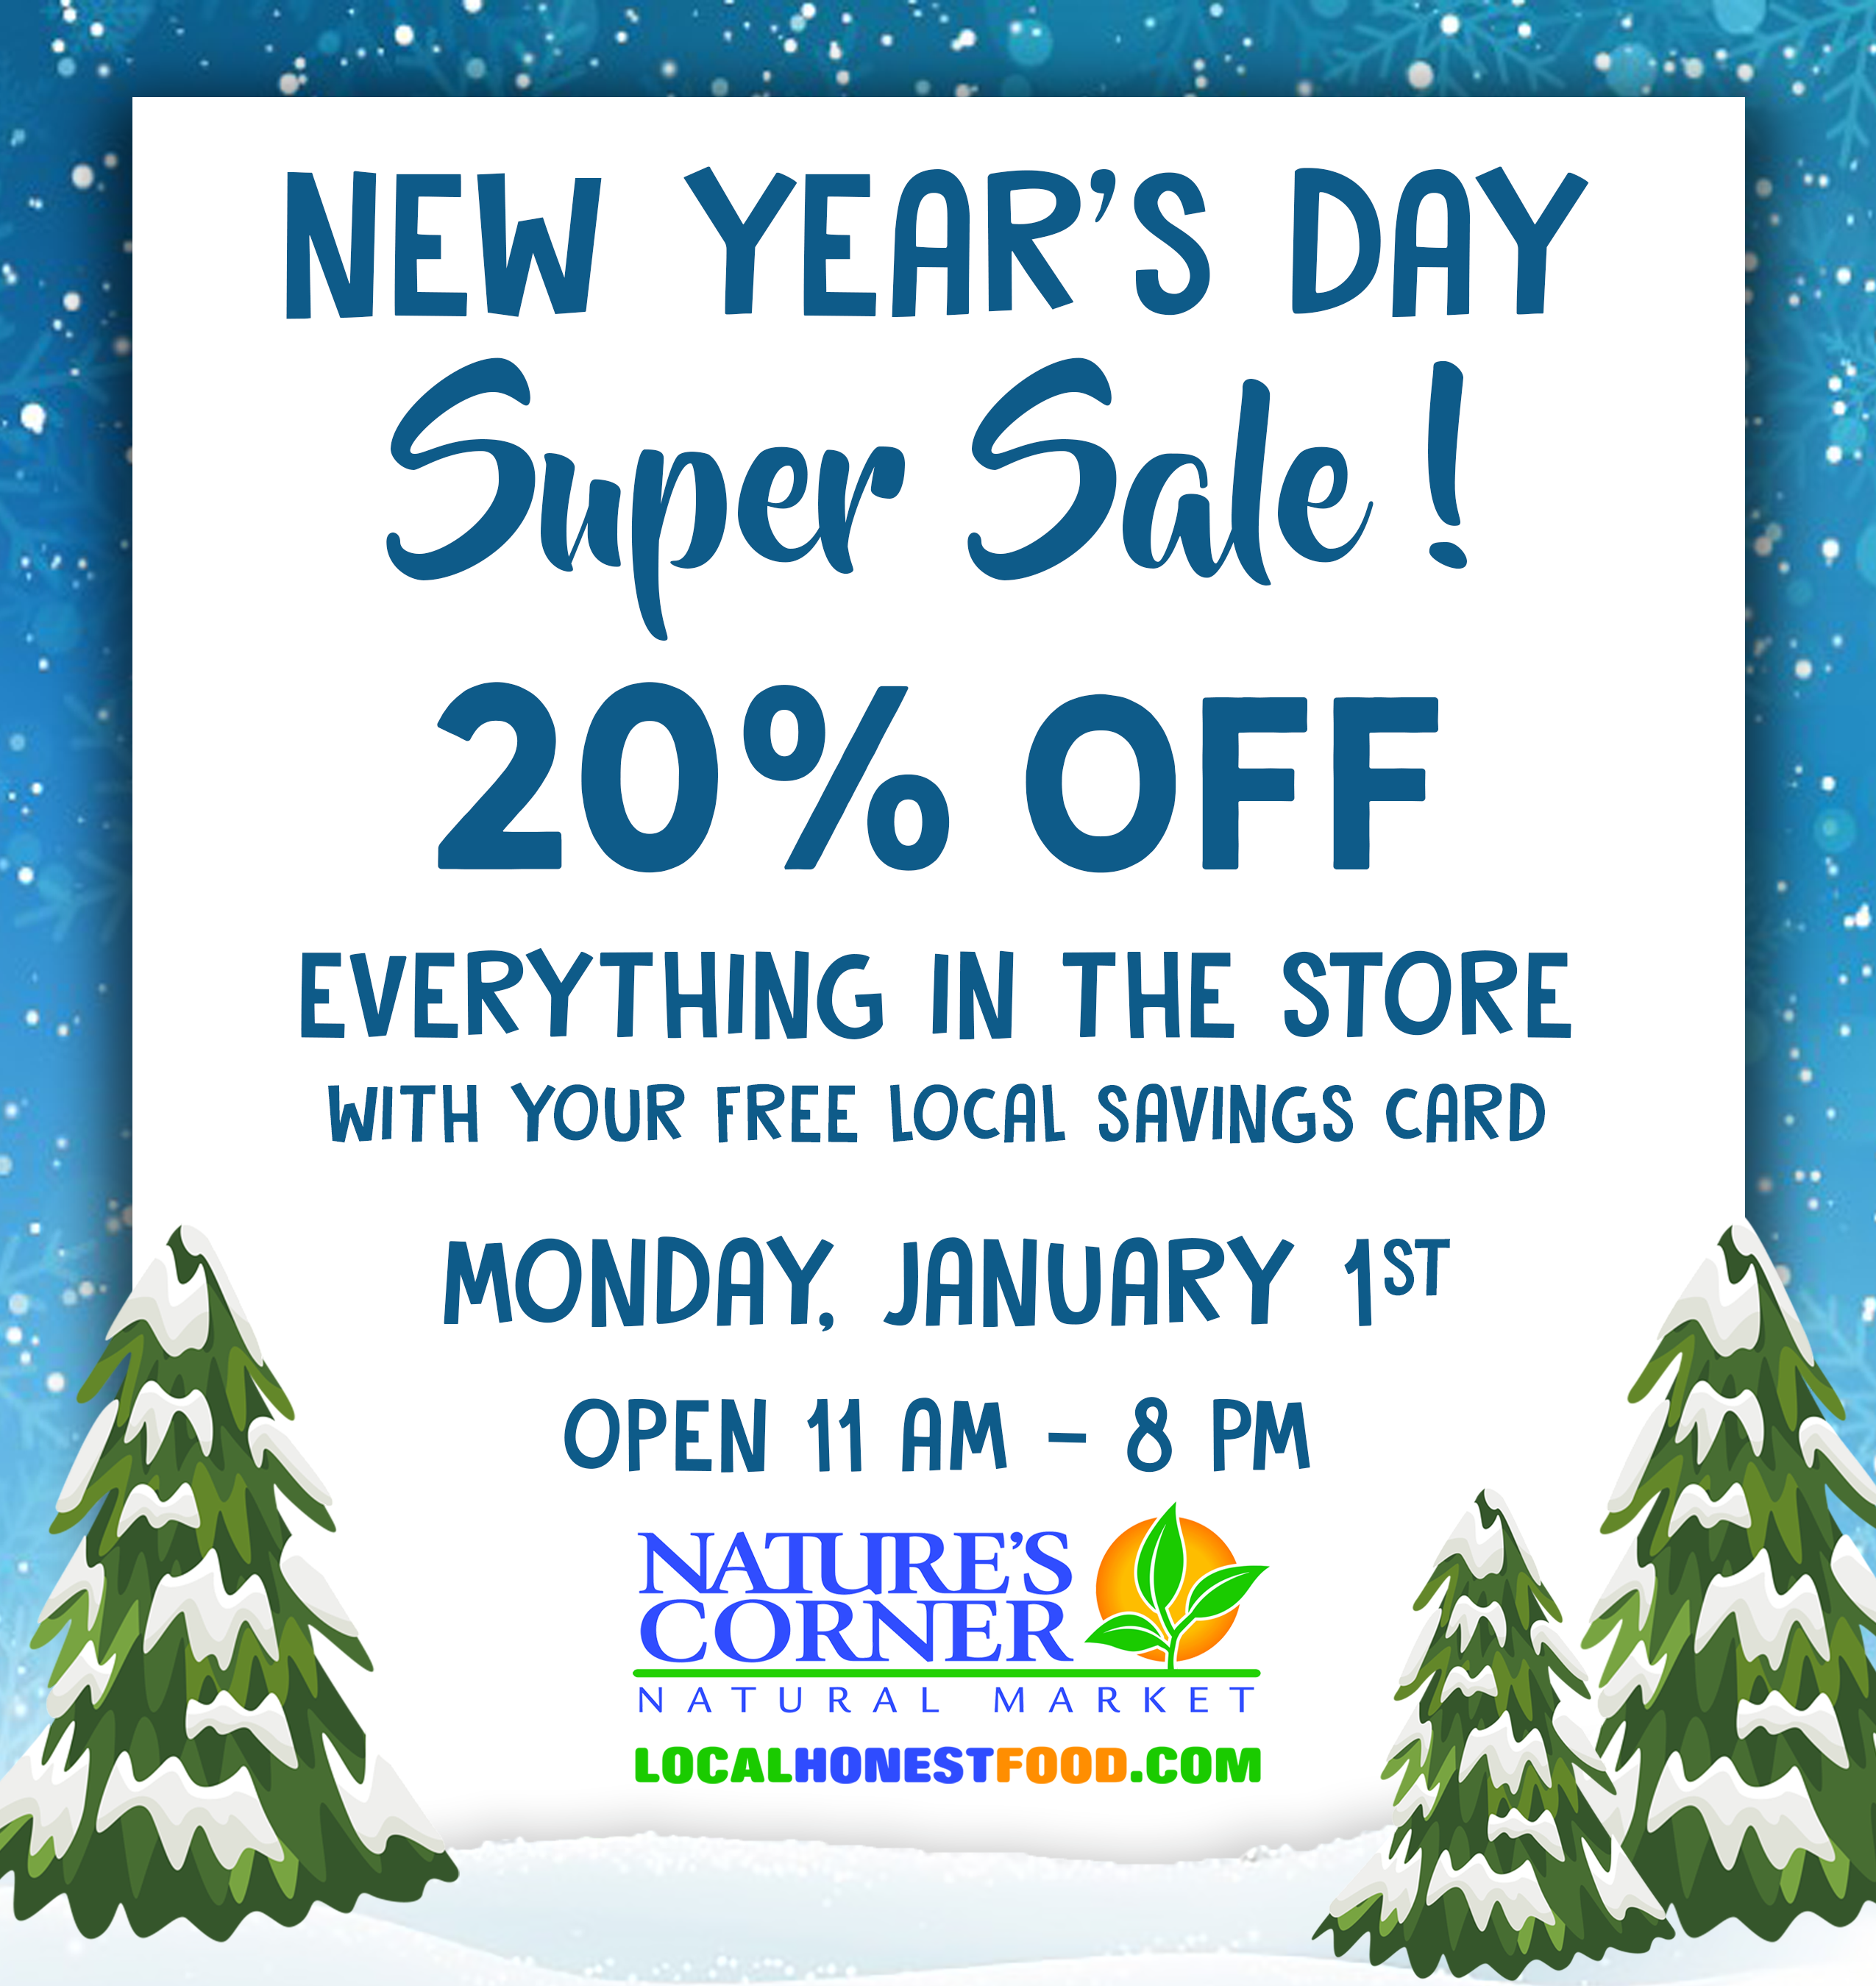 Are Shops Open New Years Day - News & Photos | WVPhotos